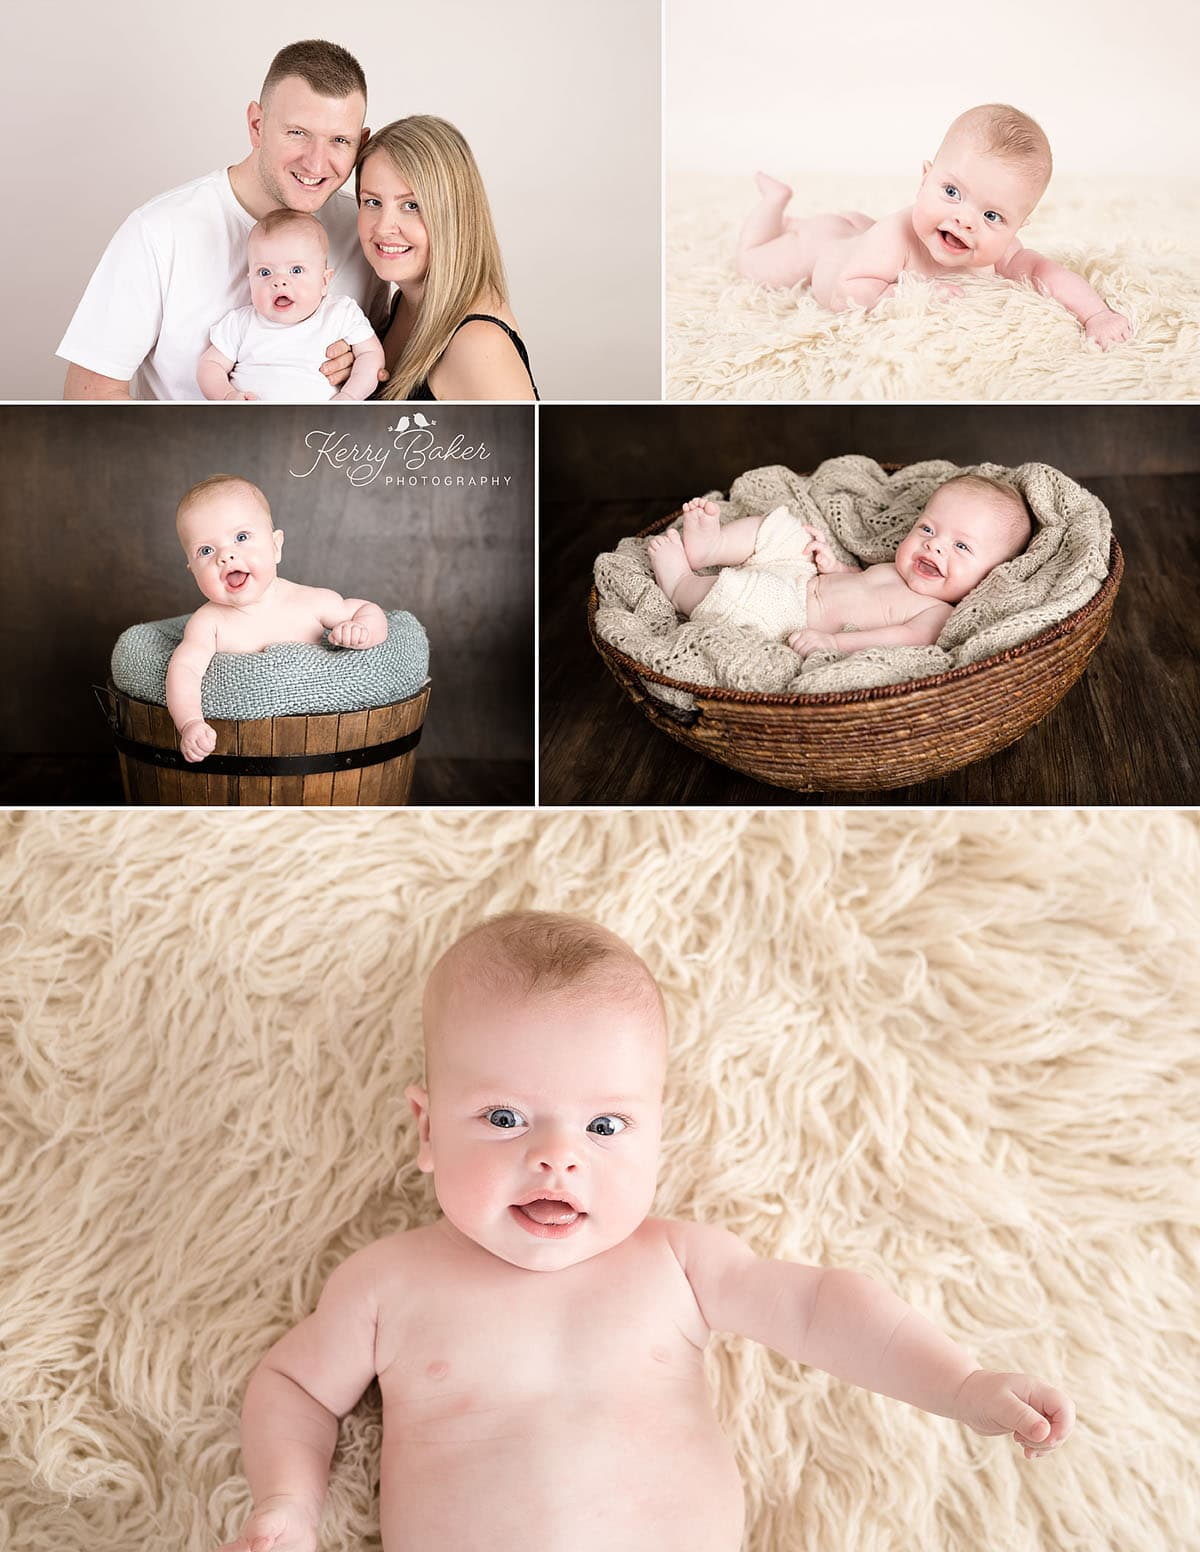 4 month old baby boy and family photos